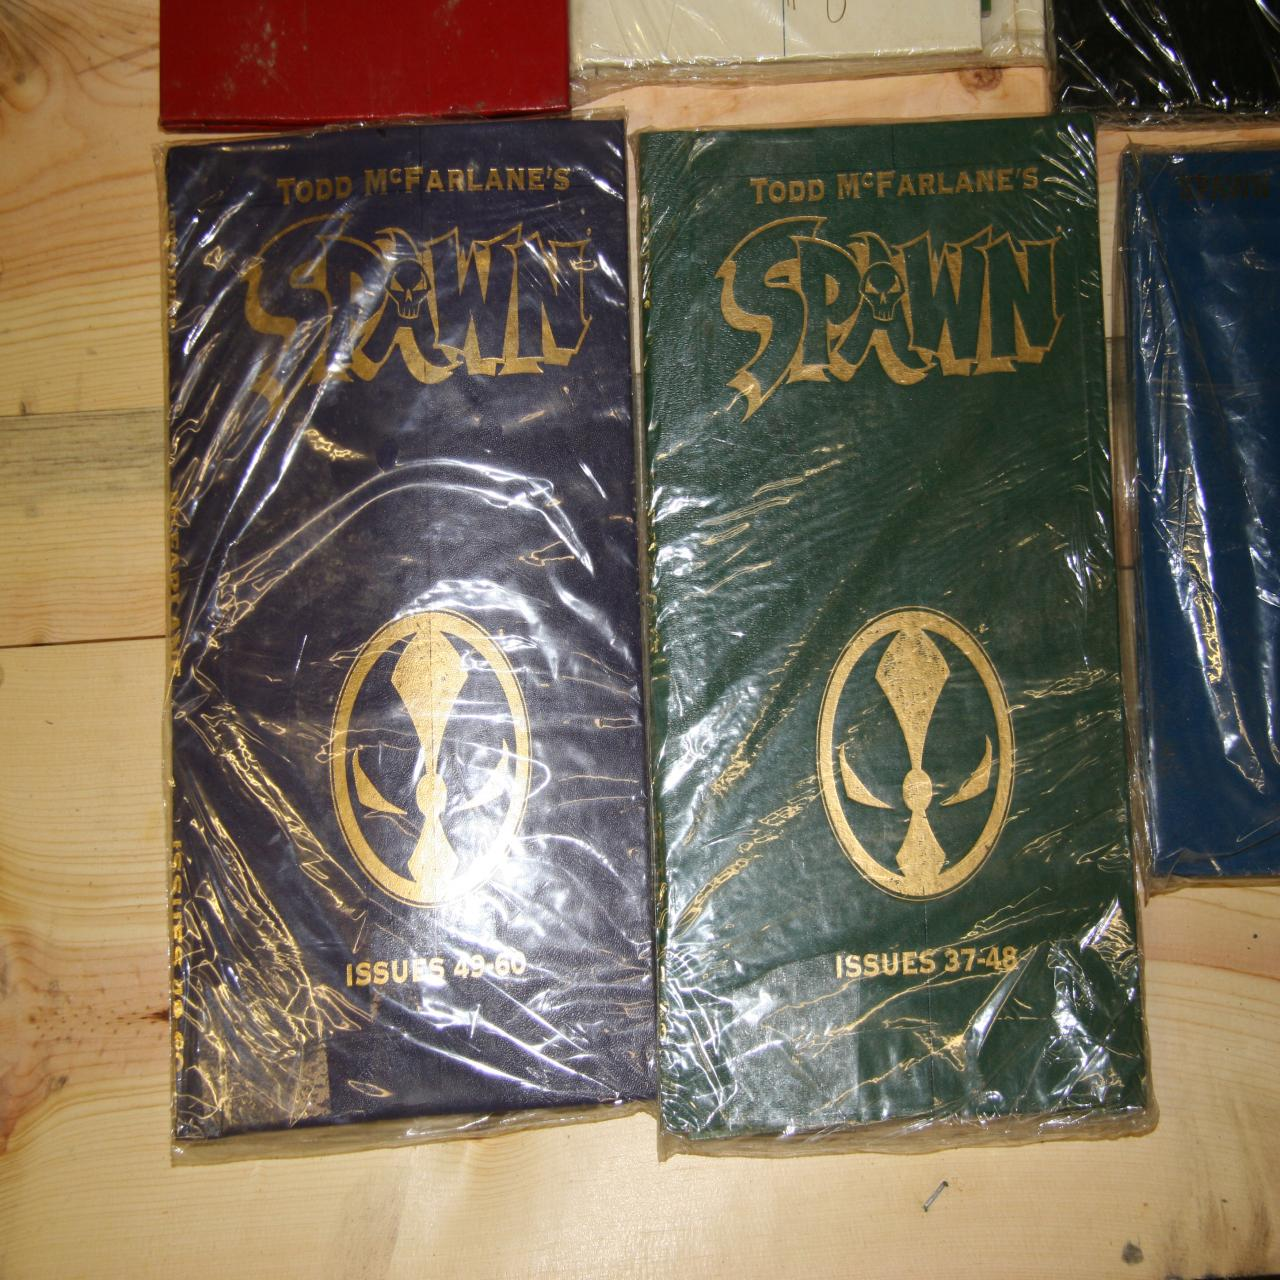 Foil Stamping Book Cover Diy : Lot set of foil stamping dies for spawn series